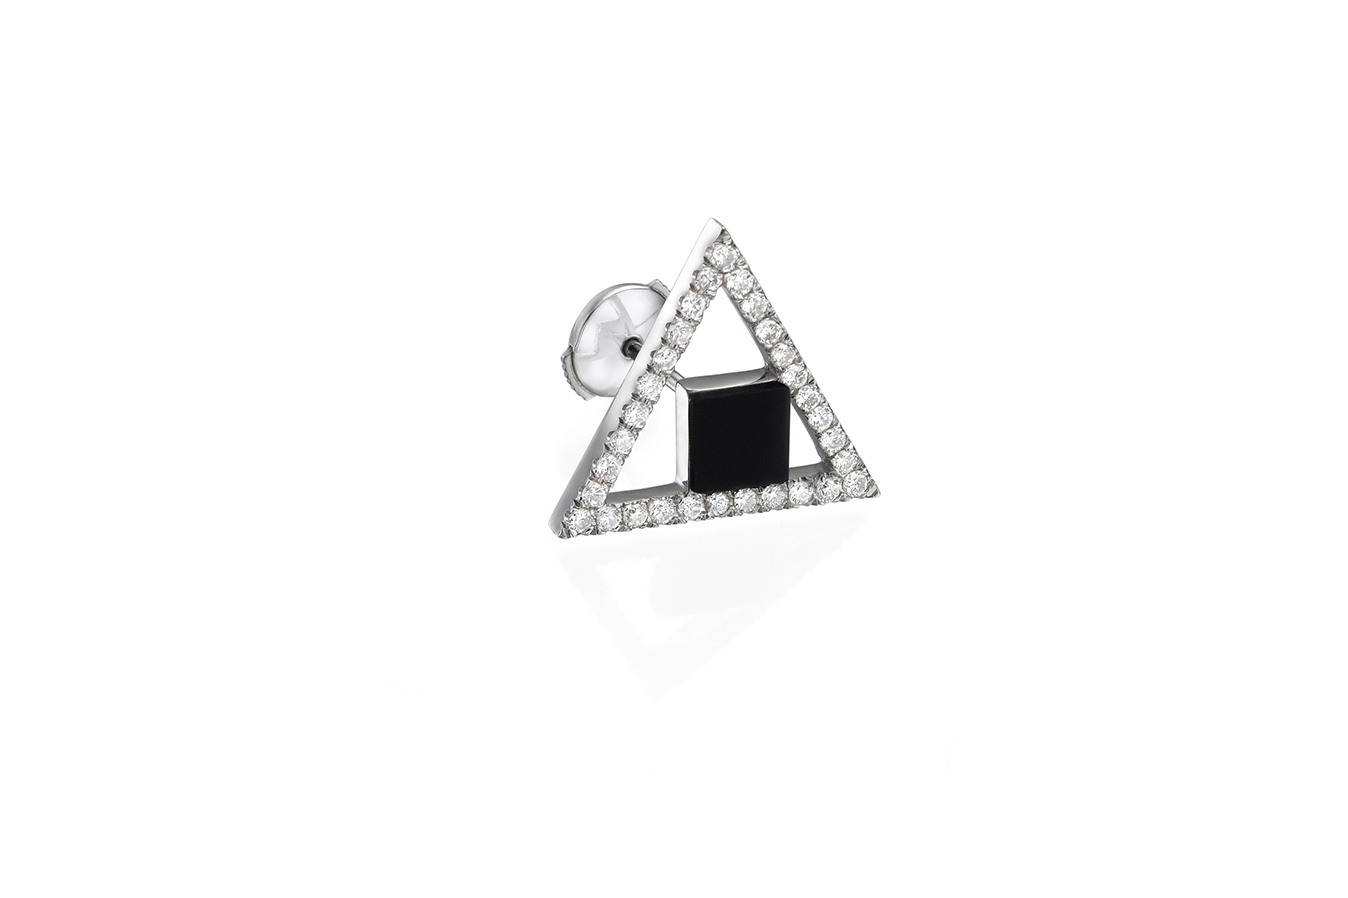 RATIO A+ EARRING 18K WHITE GOLD ONYX 0.30 CT DIAMONDS